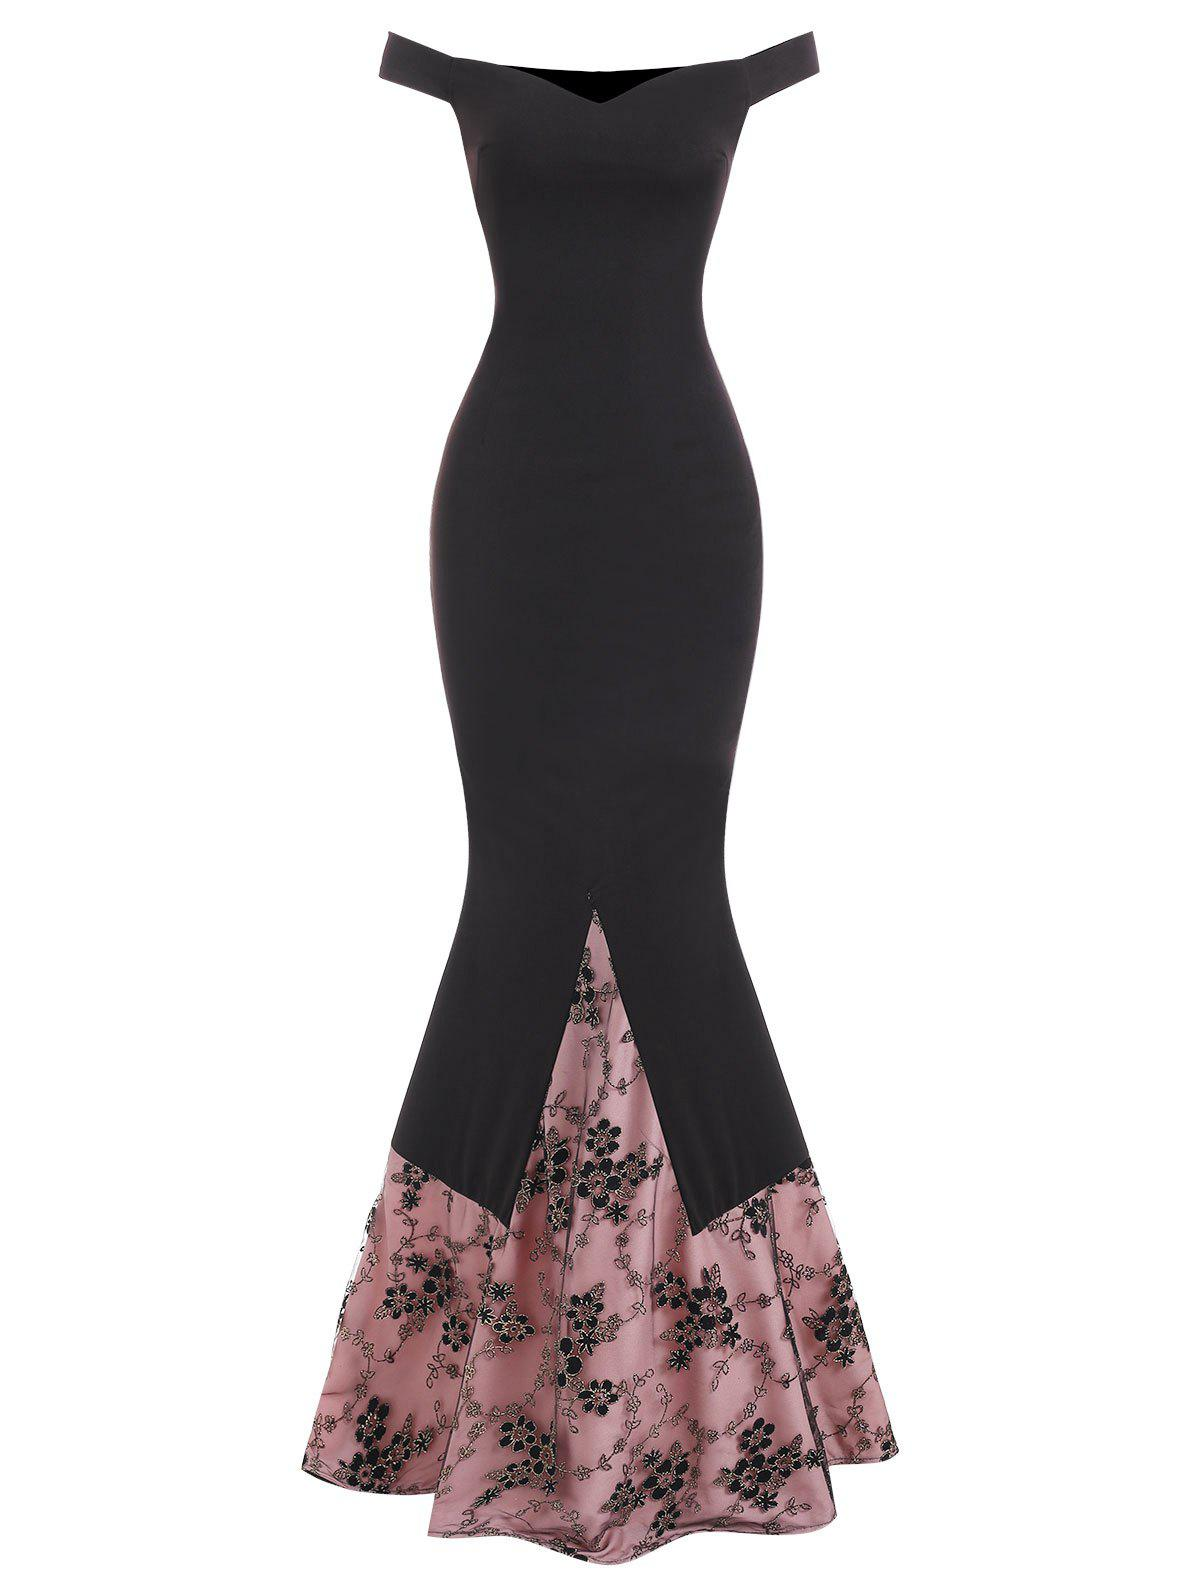 Off The Shoulder Floral Mesh Overlay Mermaid Prom Dress - BLACK M